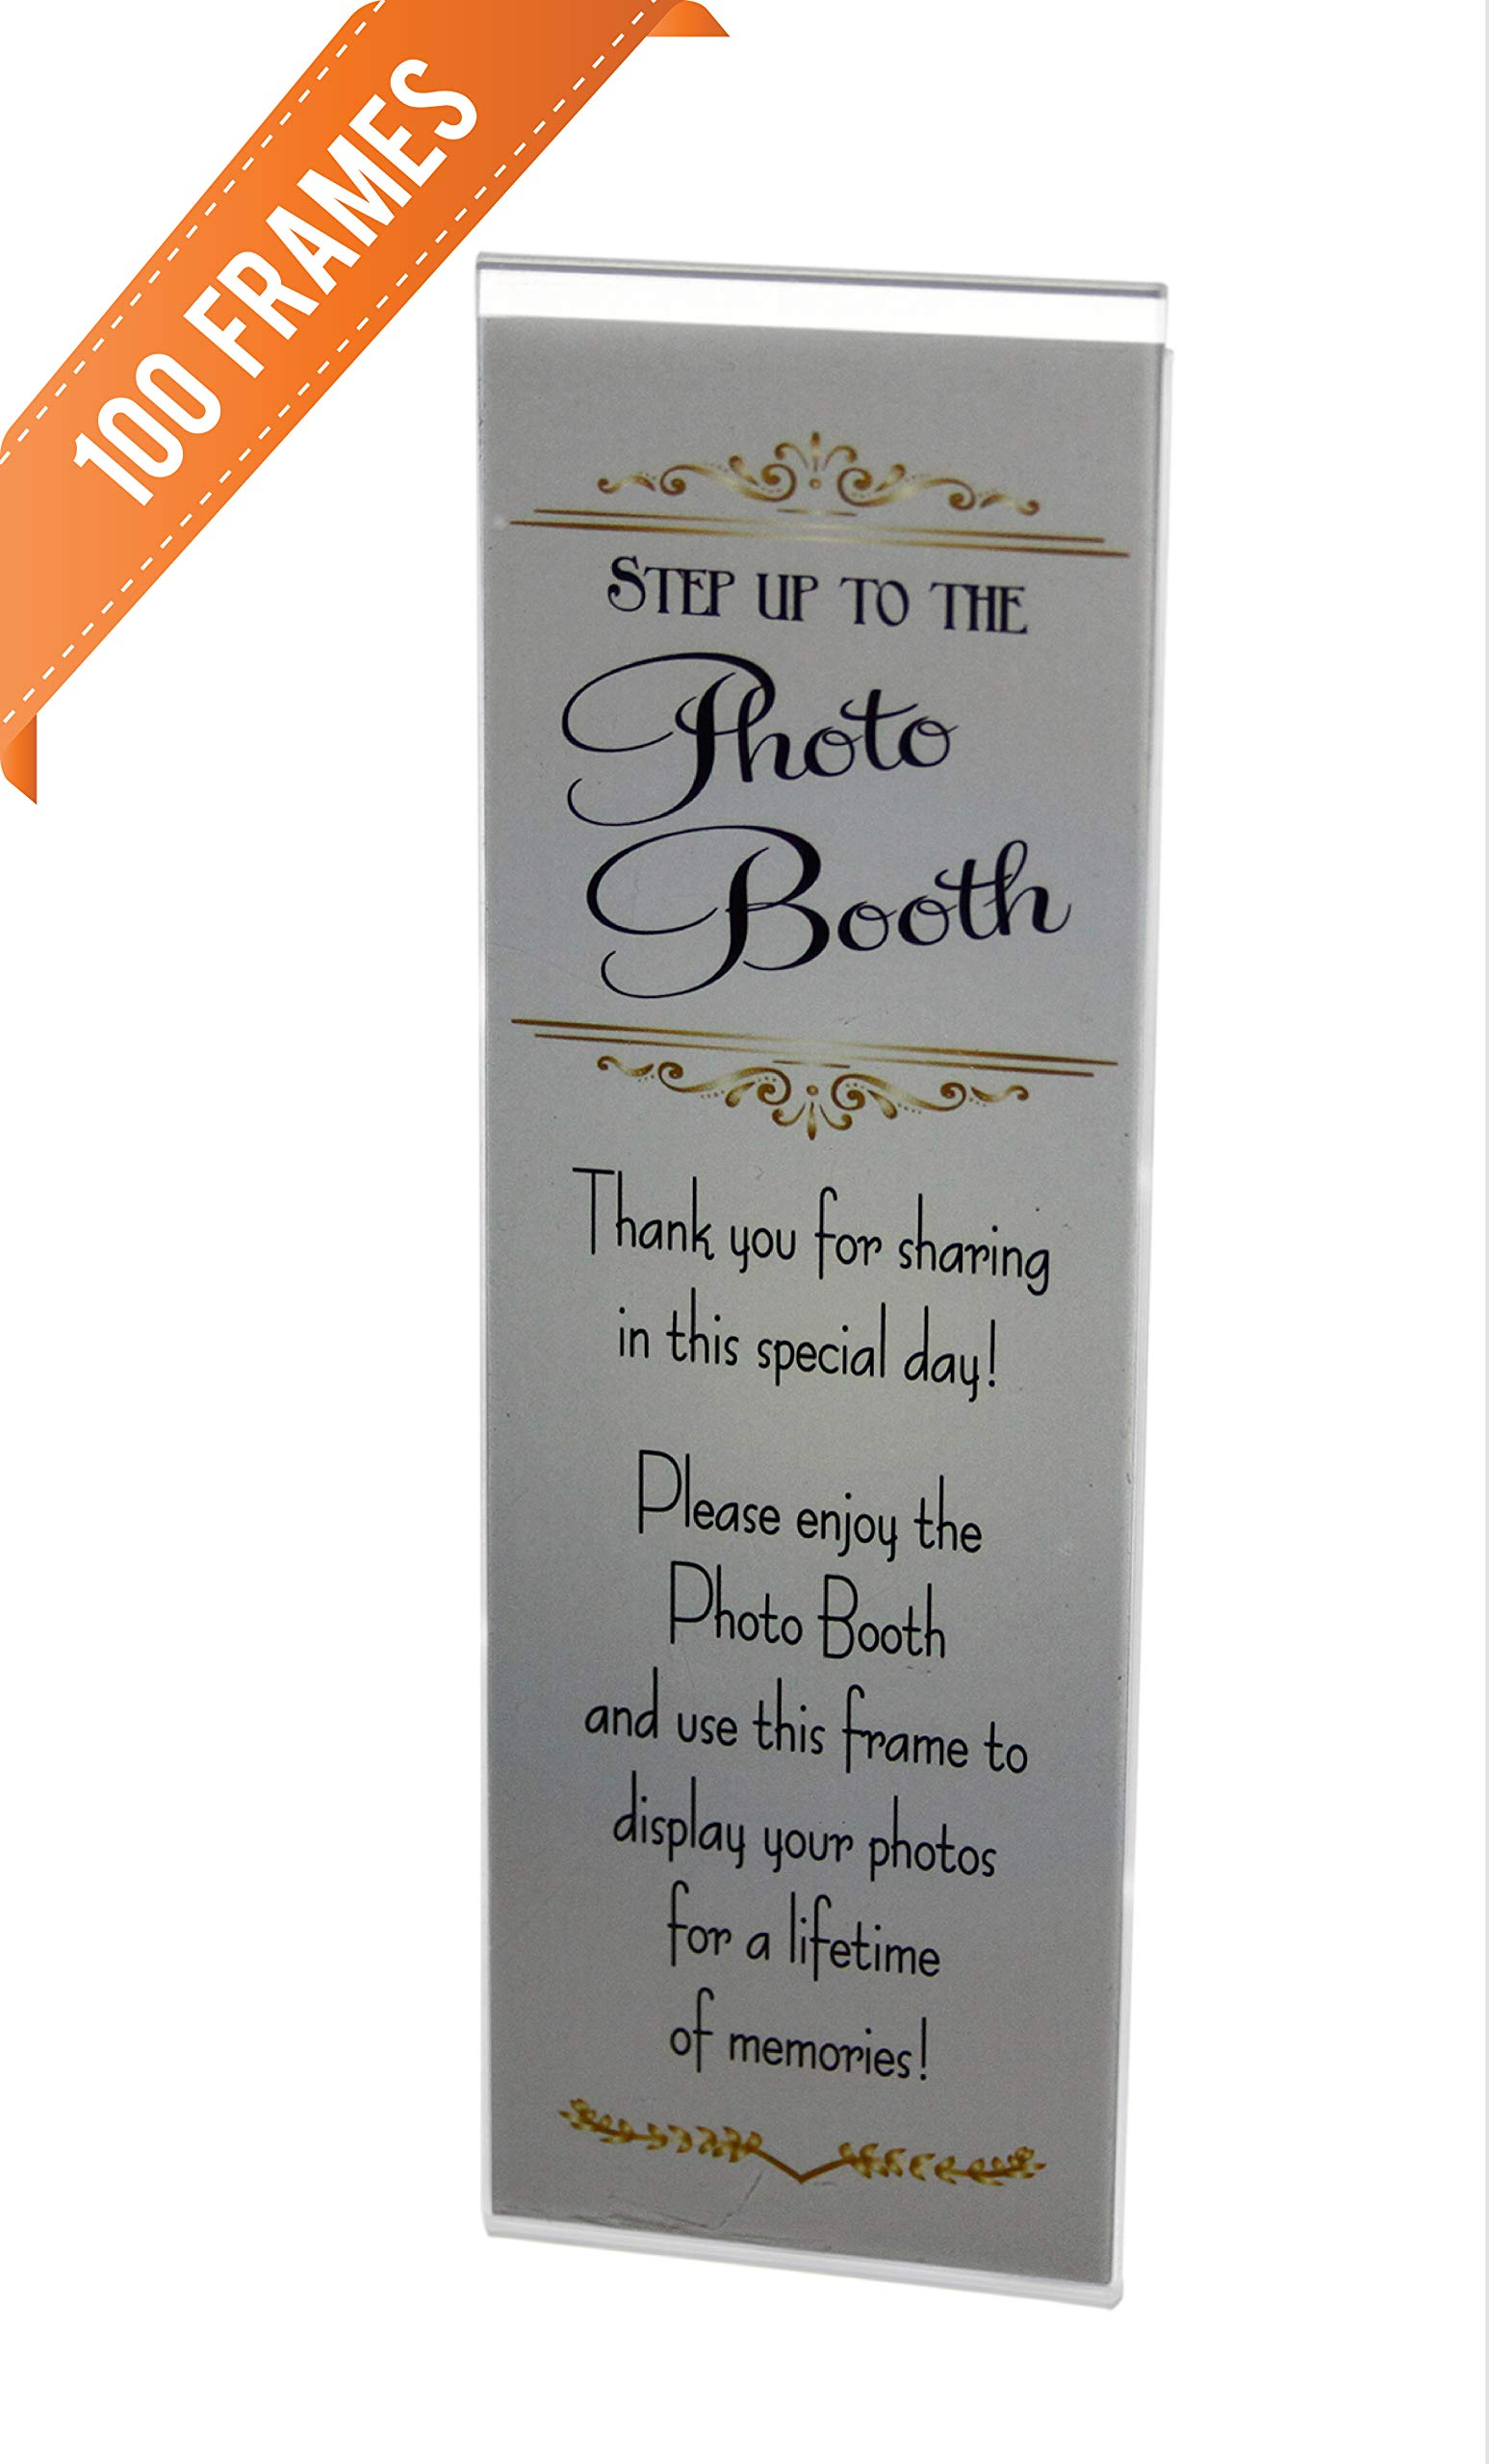 100 Acrylic Magnetic Photo Booth Frames for 2'' X 6'' Photo Strips by Photo Booth Nook